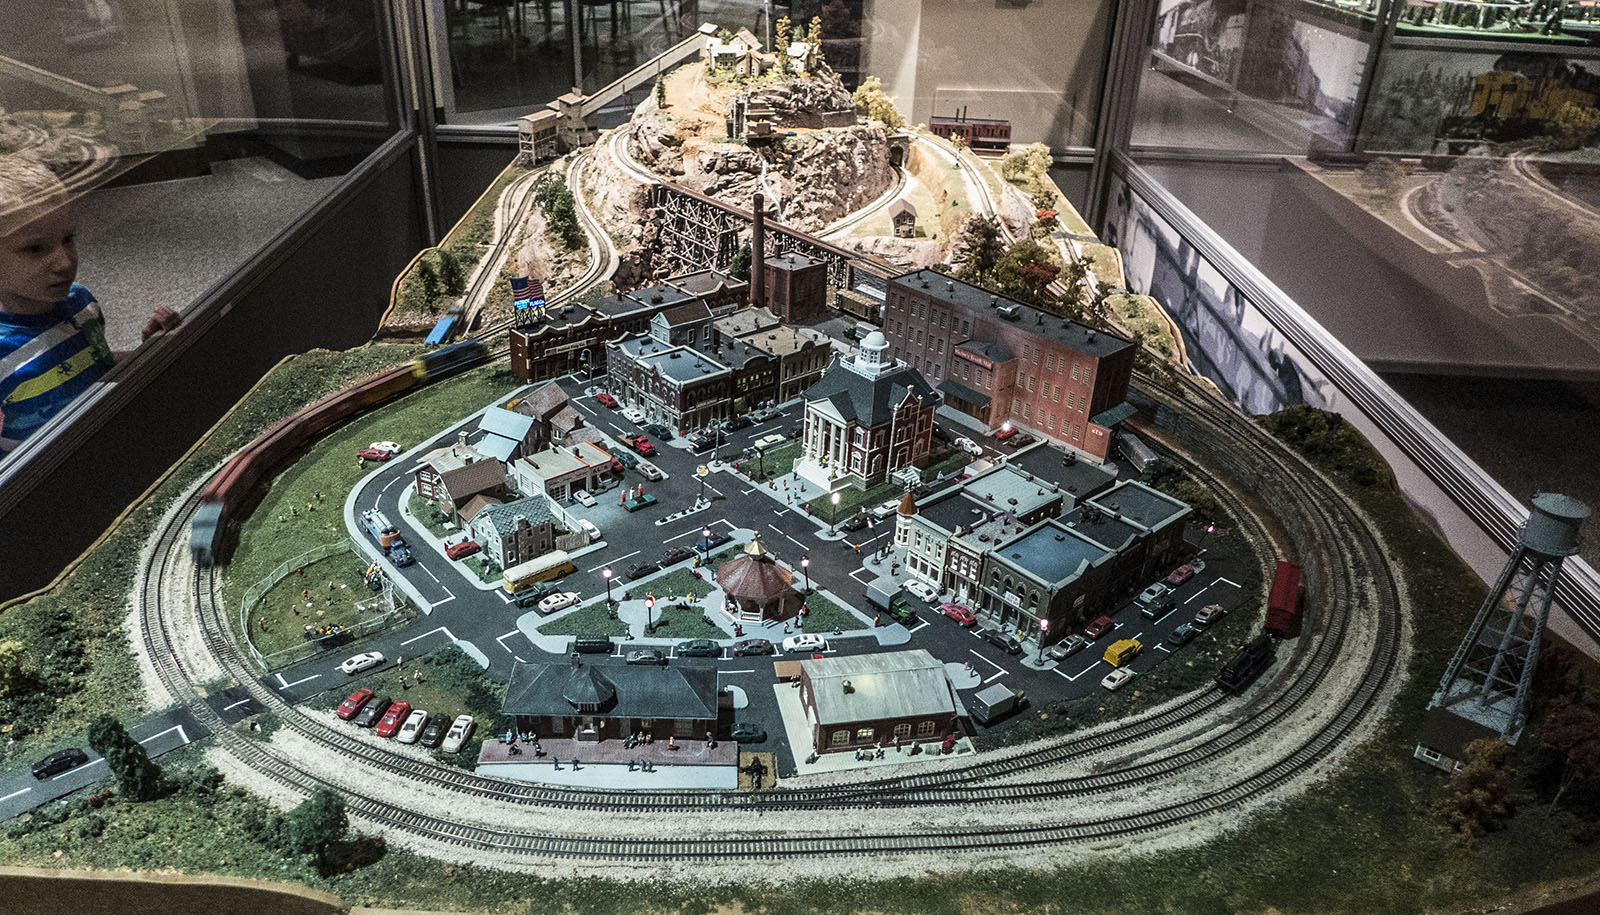 2014 Magic Of Model Trains Photo Gallery The Wrecking